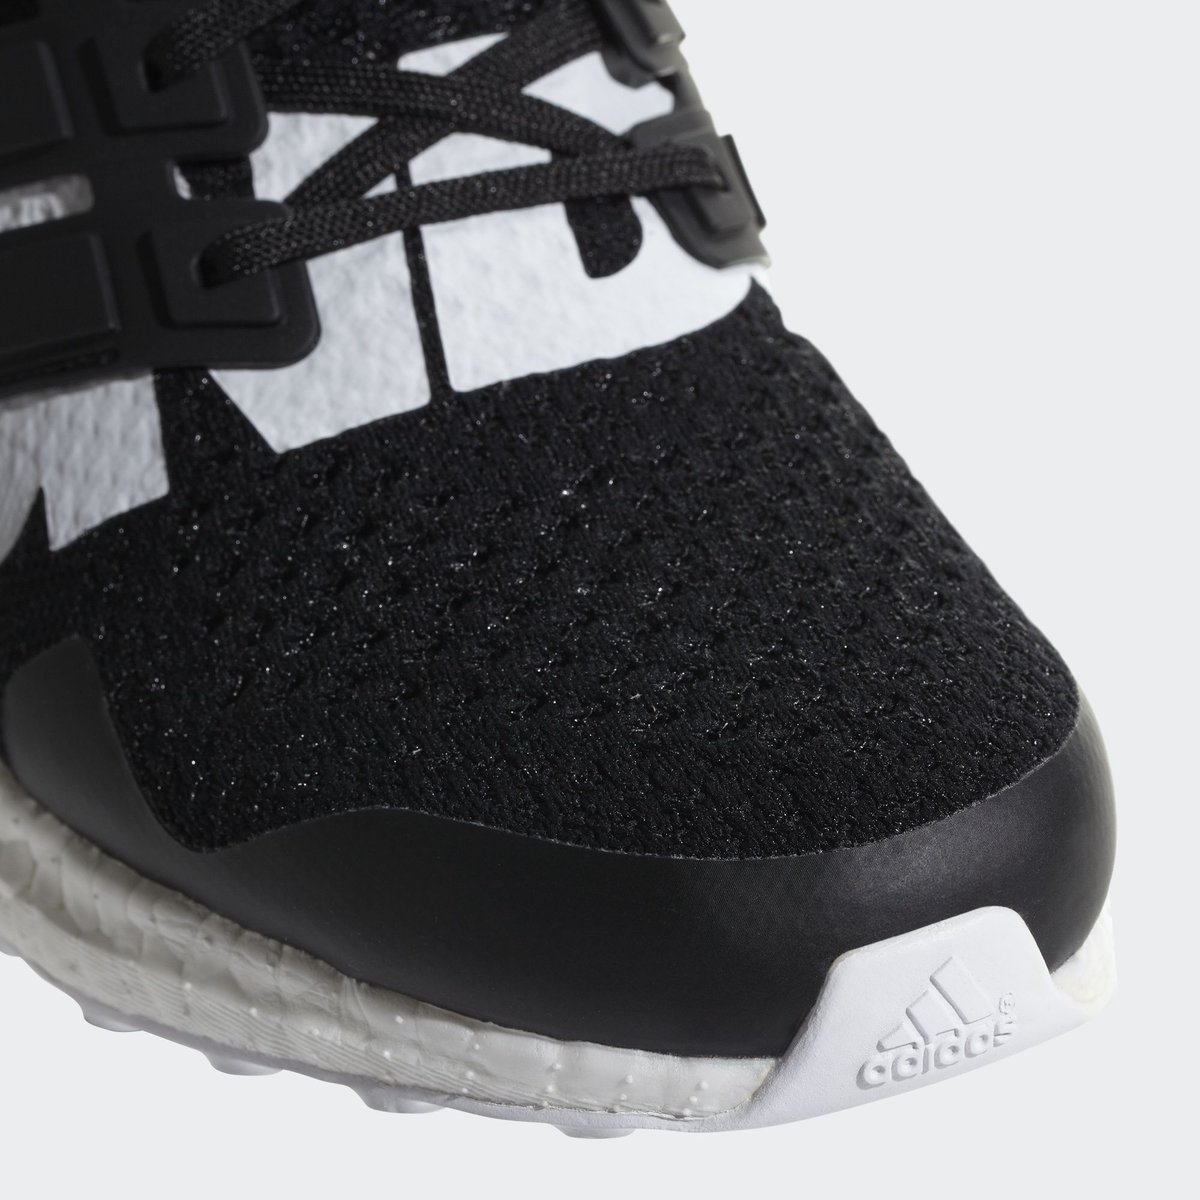 e1c2e30fd netherlands adidas alerts on twitter official adidas images of the  undefeatedinc x adidas ultra boost 1.0